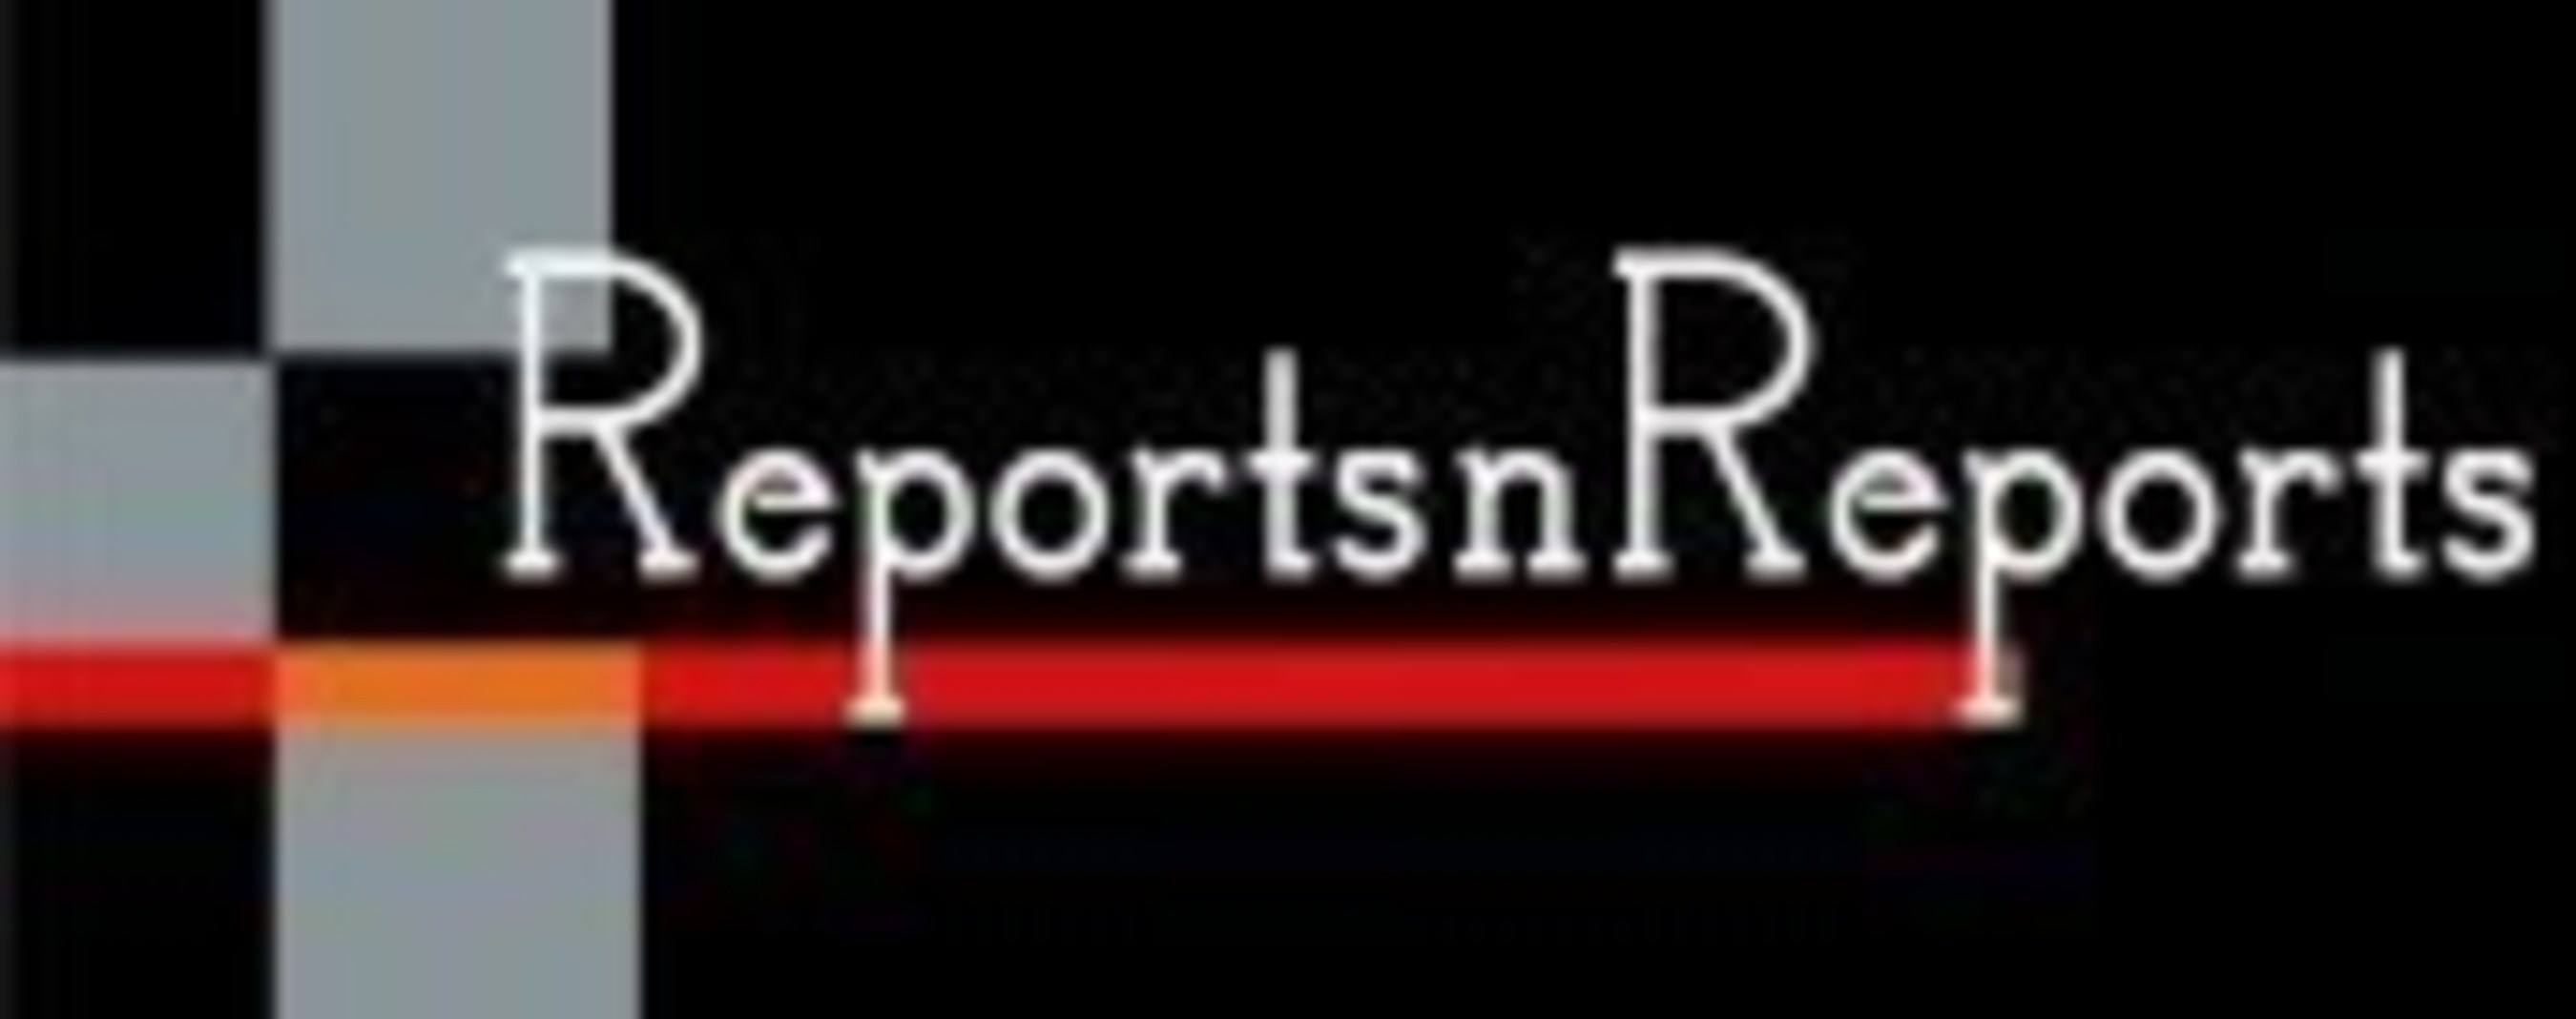 Deception Technology Market to Grow at 9% CAGR to 2020